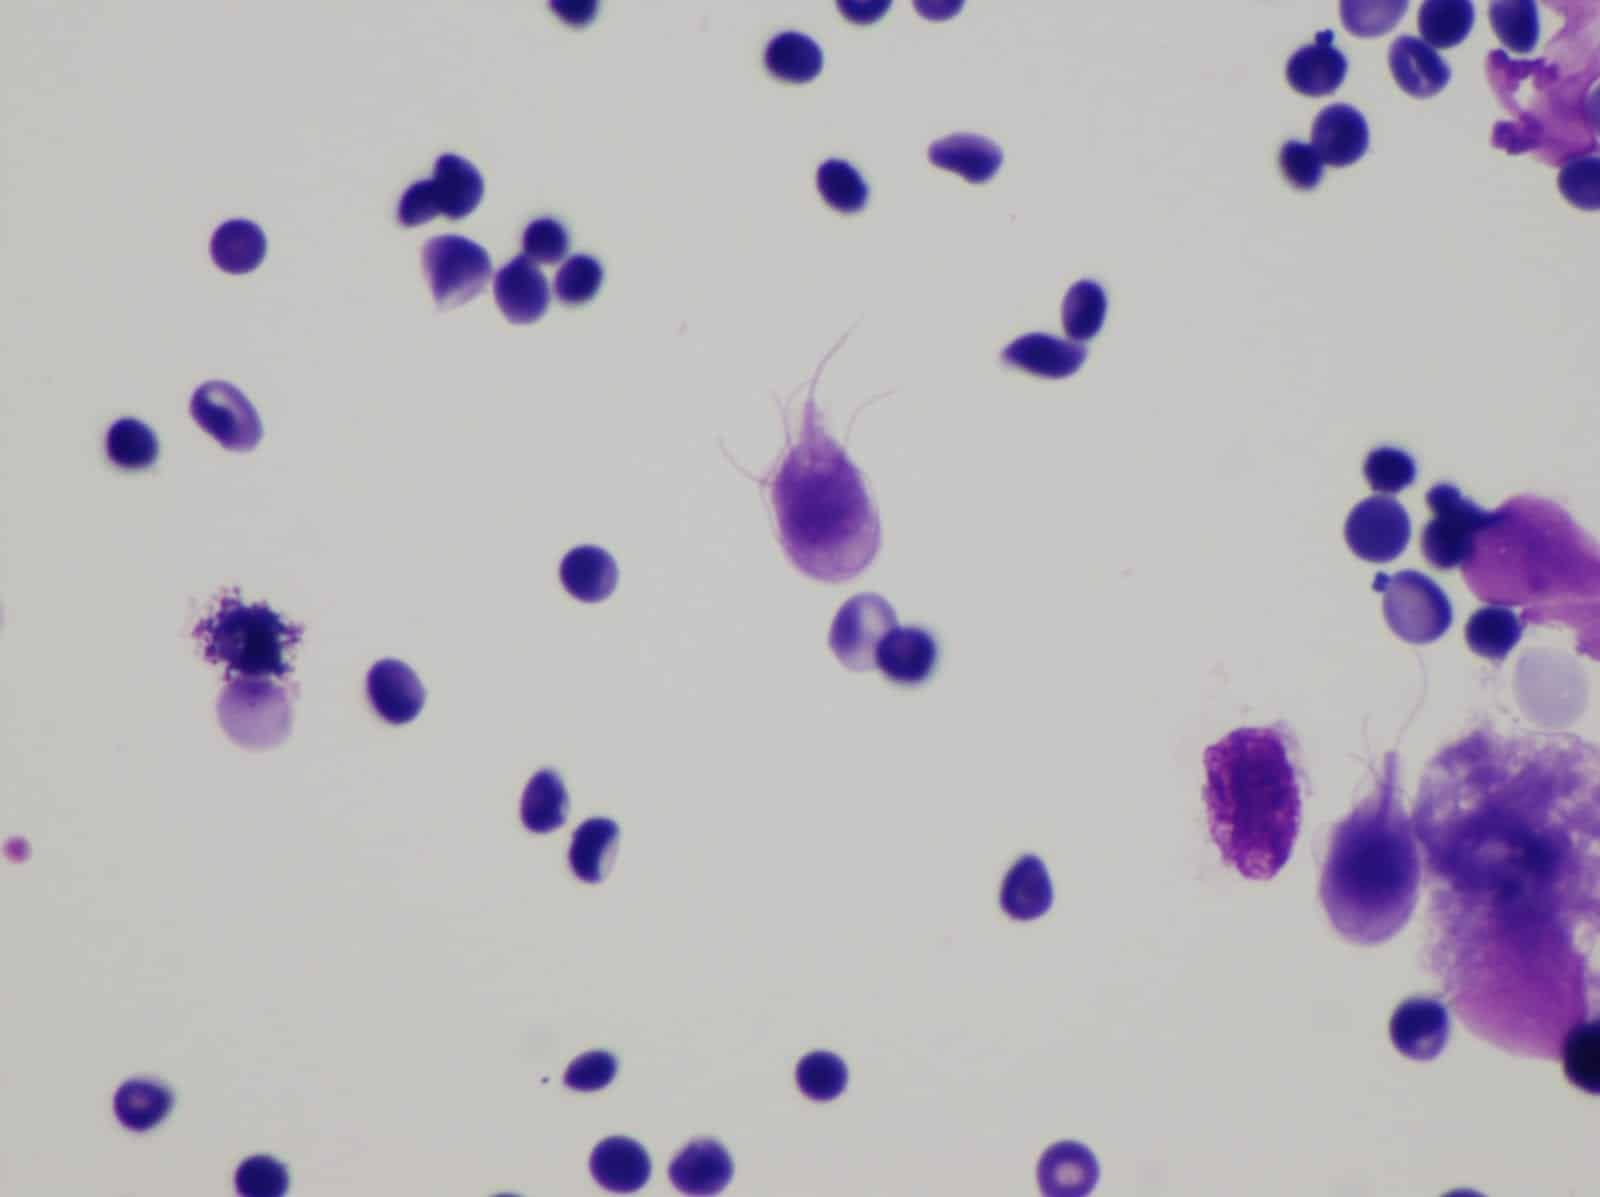 Giardia lamblia, giardia water filter